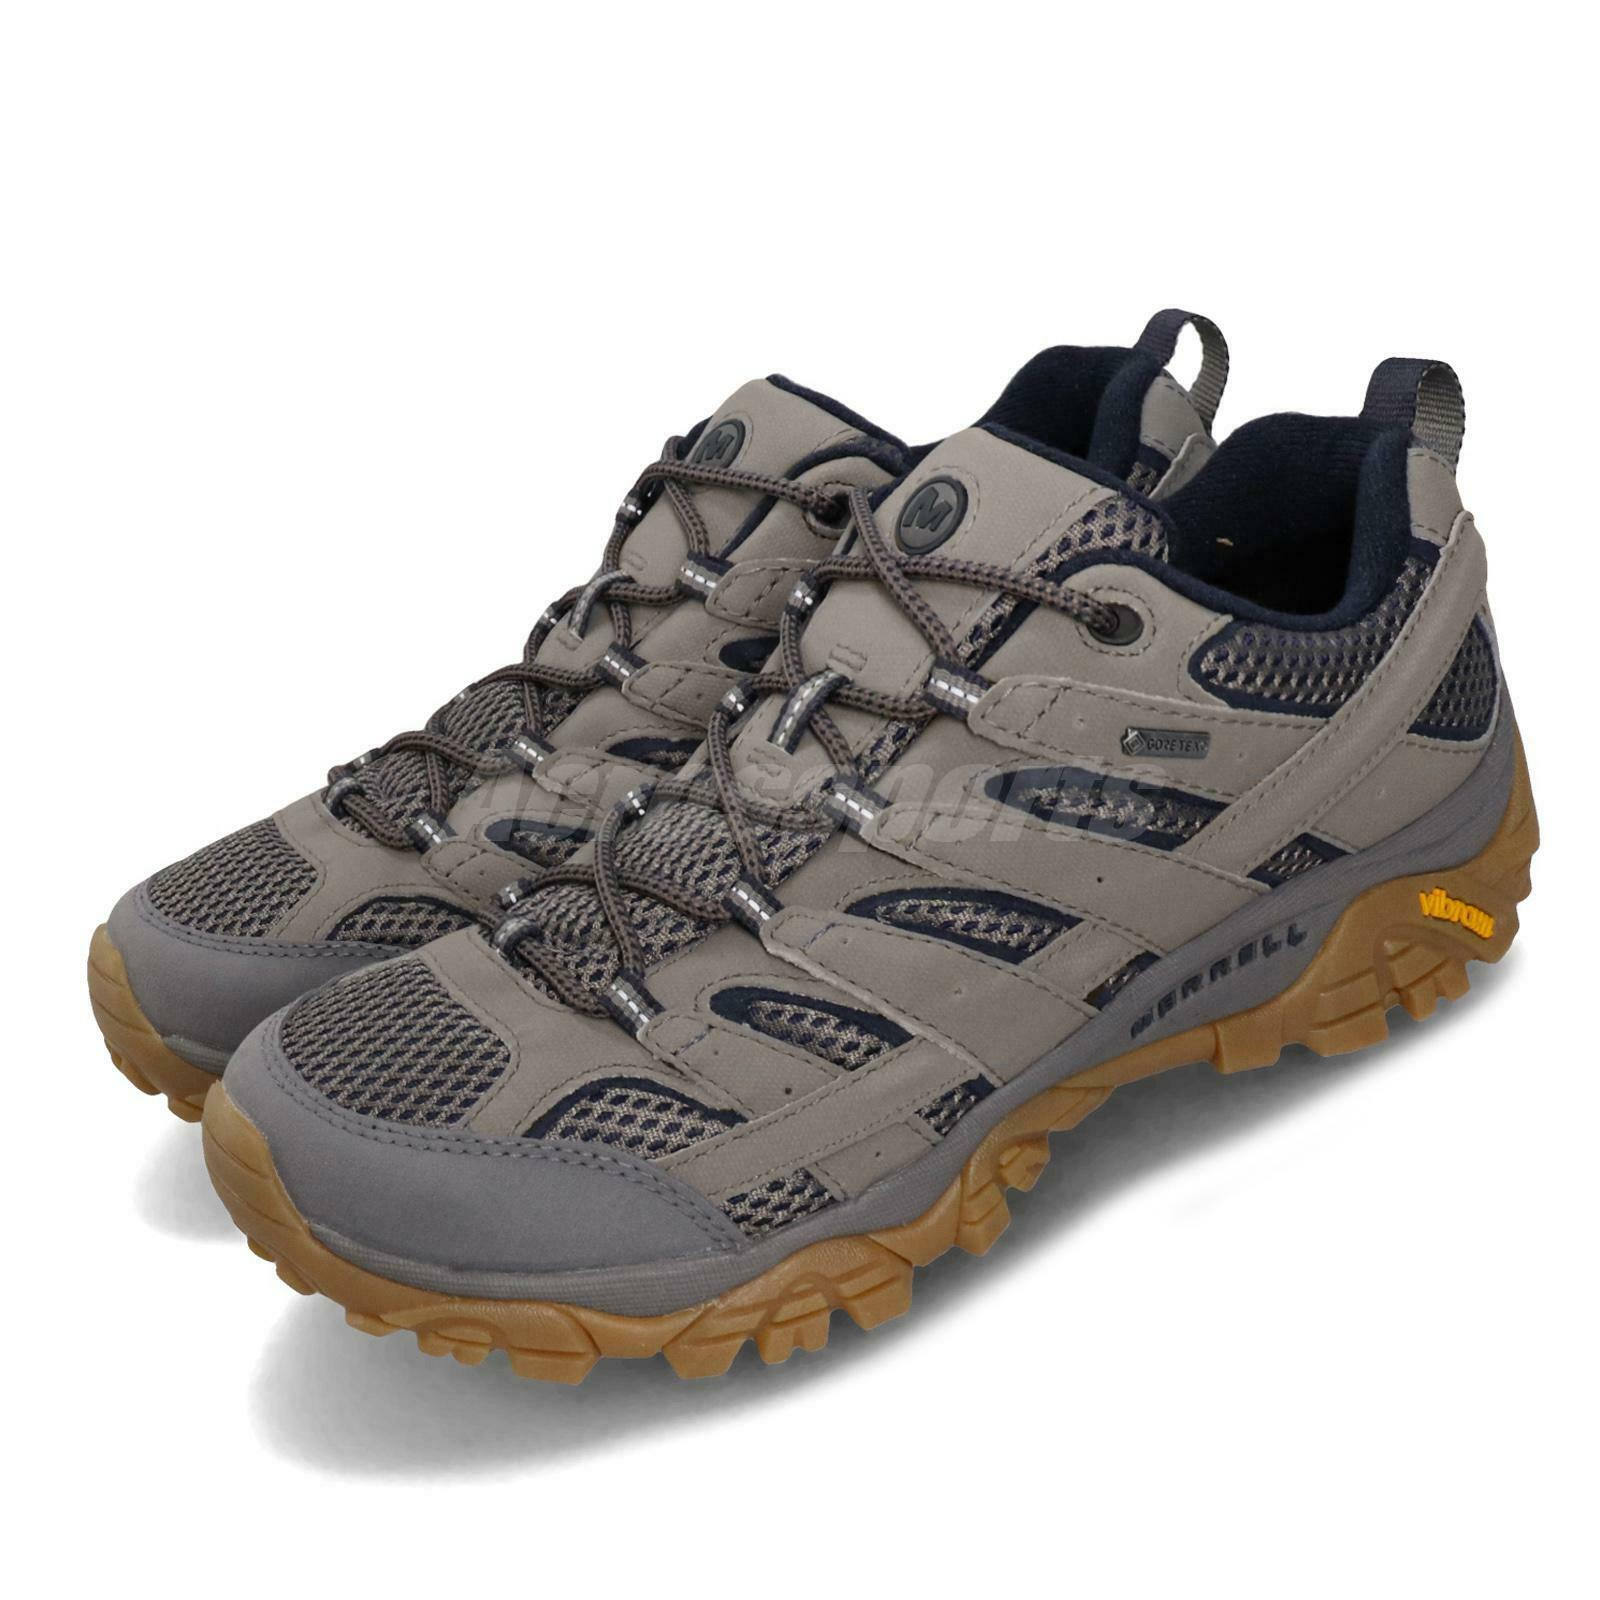 Merrell Moab  2 GTX Gore-Tex Charcoal Grey Gum Men Outdoors Hiking shoes J99765  check out the cheapest